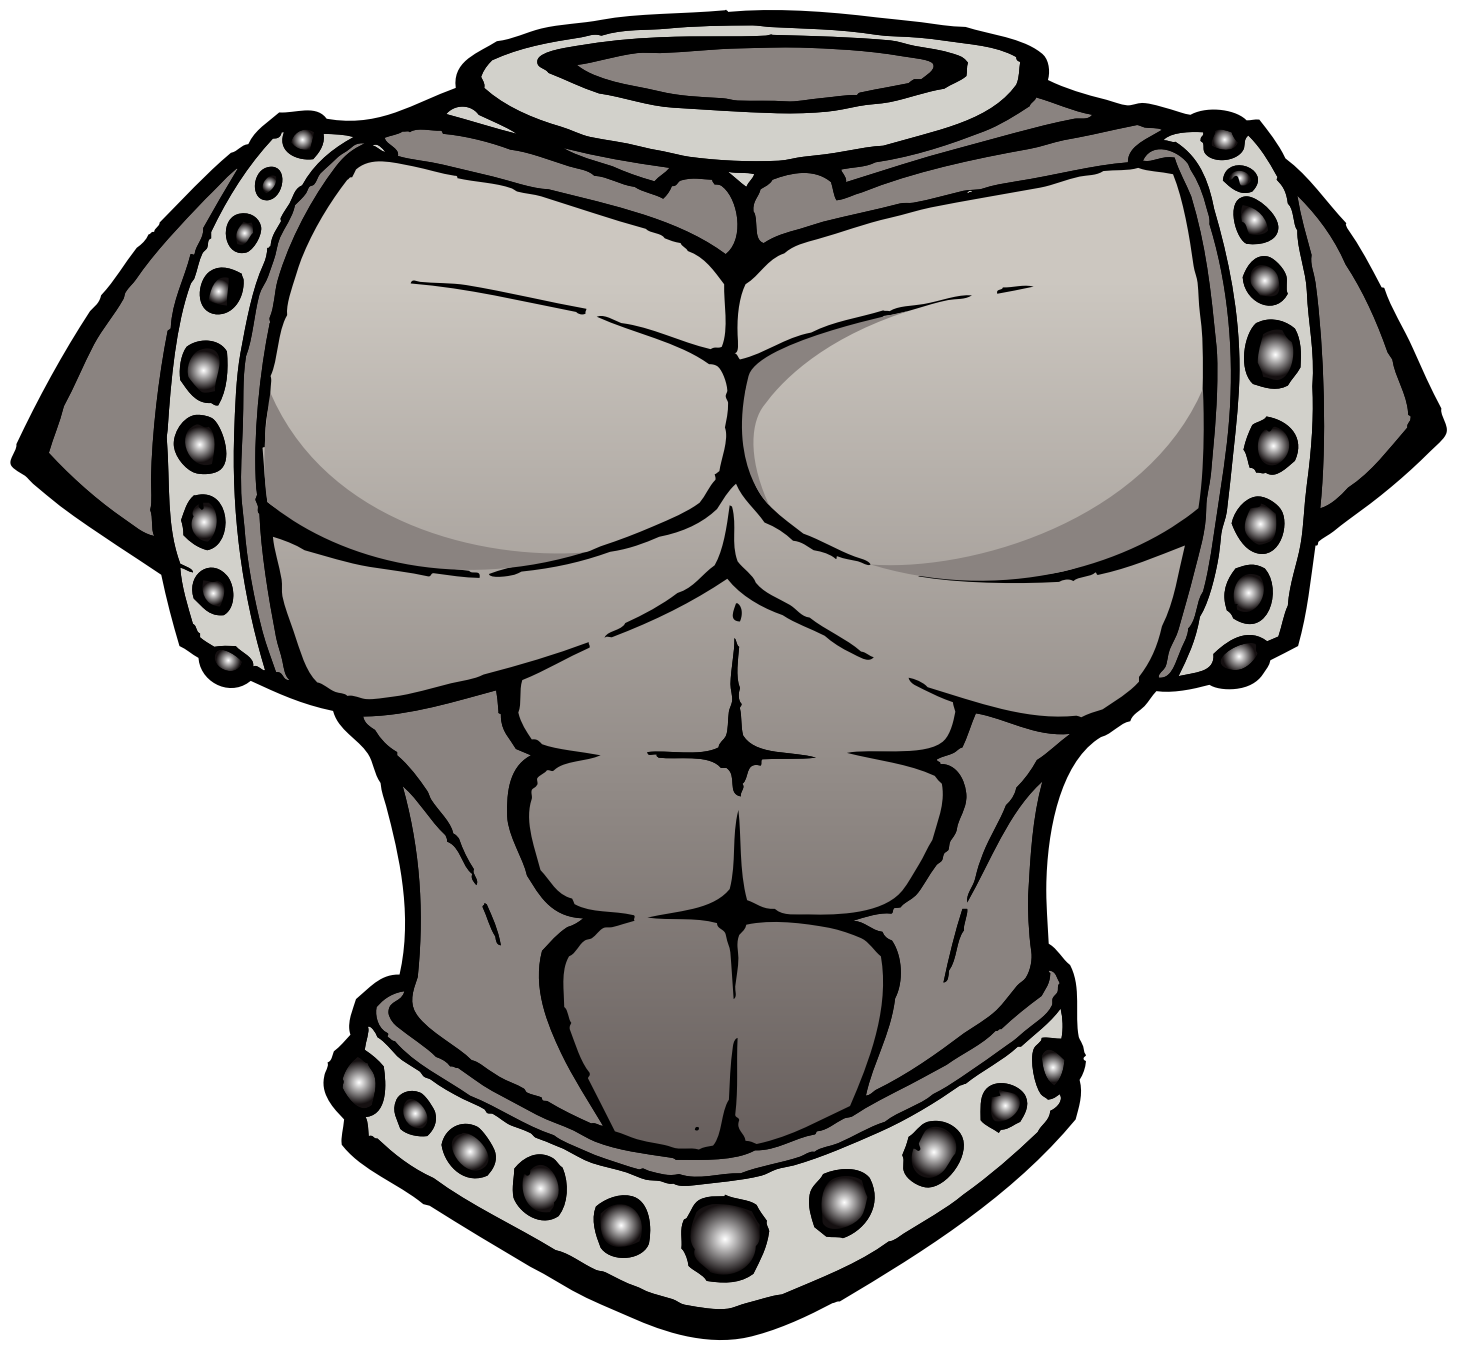 Raseone armor icons png. Warrior clipart icon